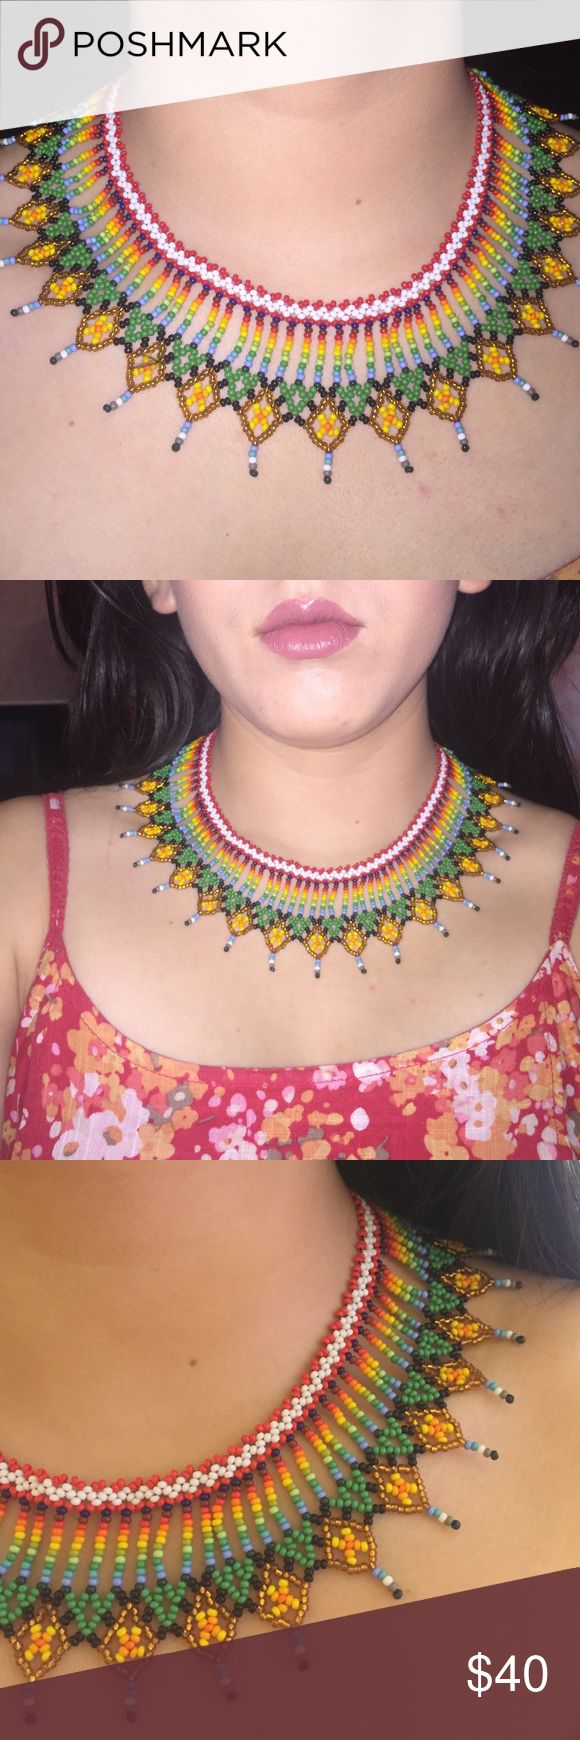 HP🌺🌺🌺Handmade Necklace from Colombia Incredible, eye-catching and unique. Handmade elaborate necklace imported from Colombia. Perfect for a music festival or a tribal outfit! Handmade Jewelry Necklaces